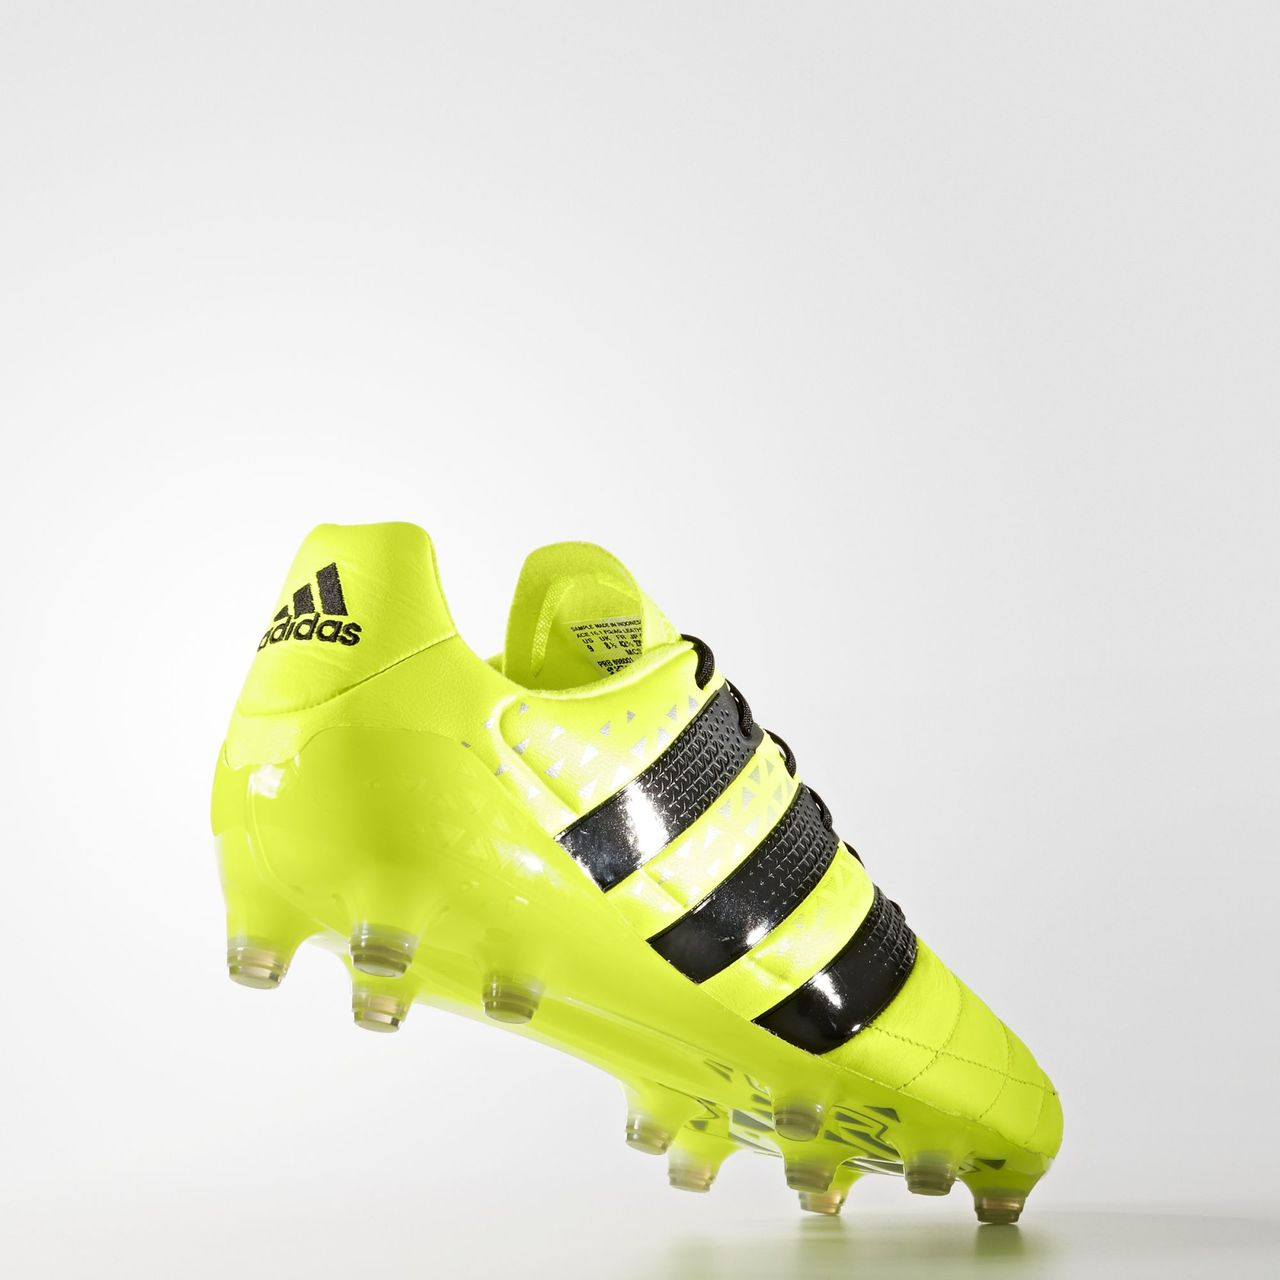 ... Click to enlarge image  adidas ace 16 1 leather firm ground boots solar yellow core black silver met e.jpg  ... 9a82234ae8d9d